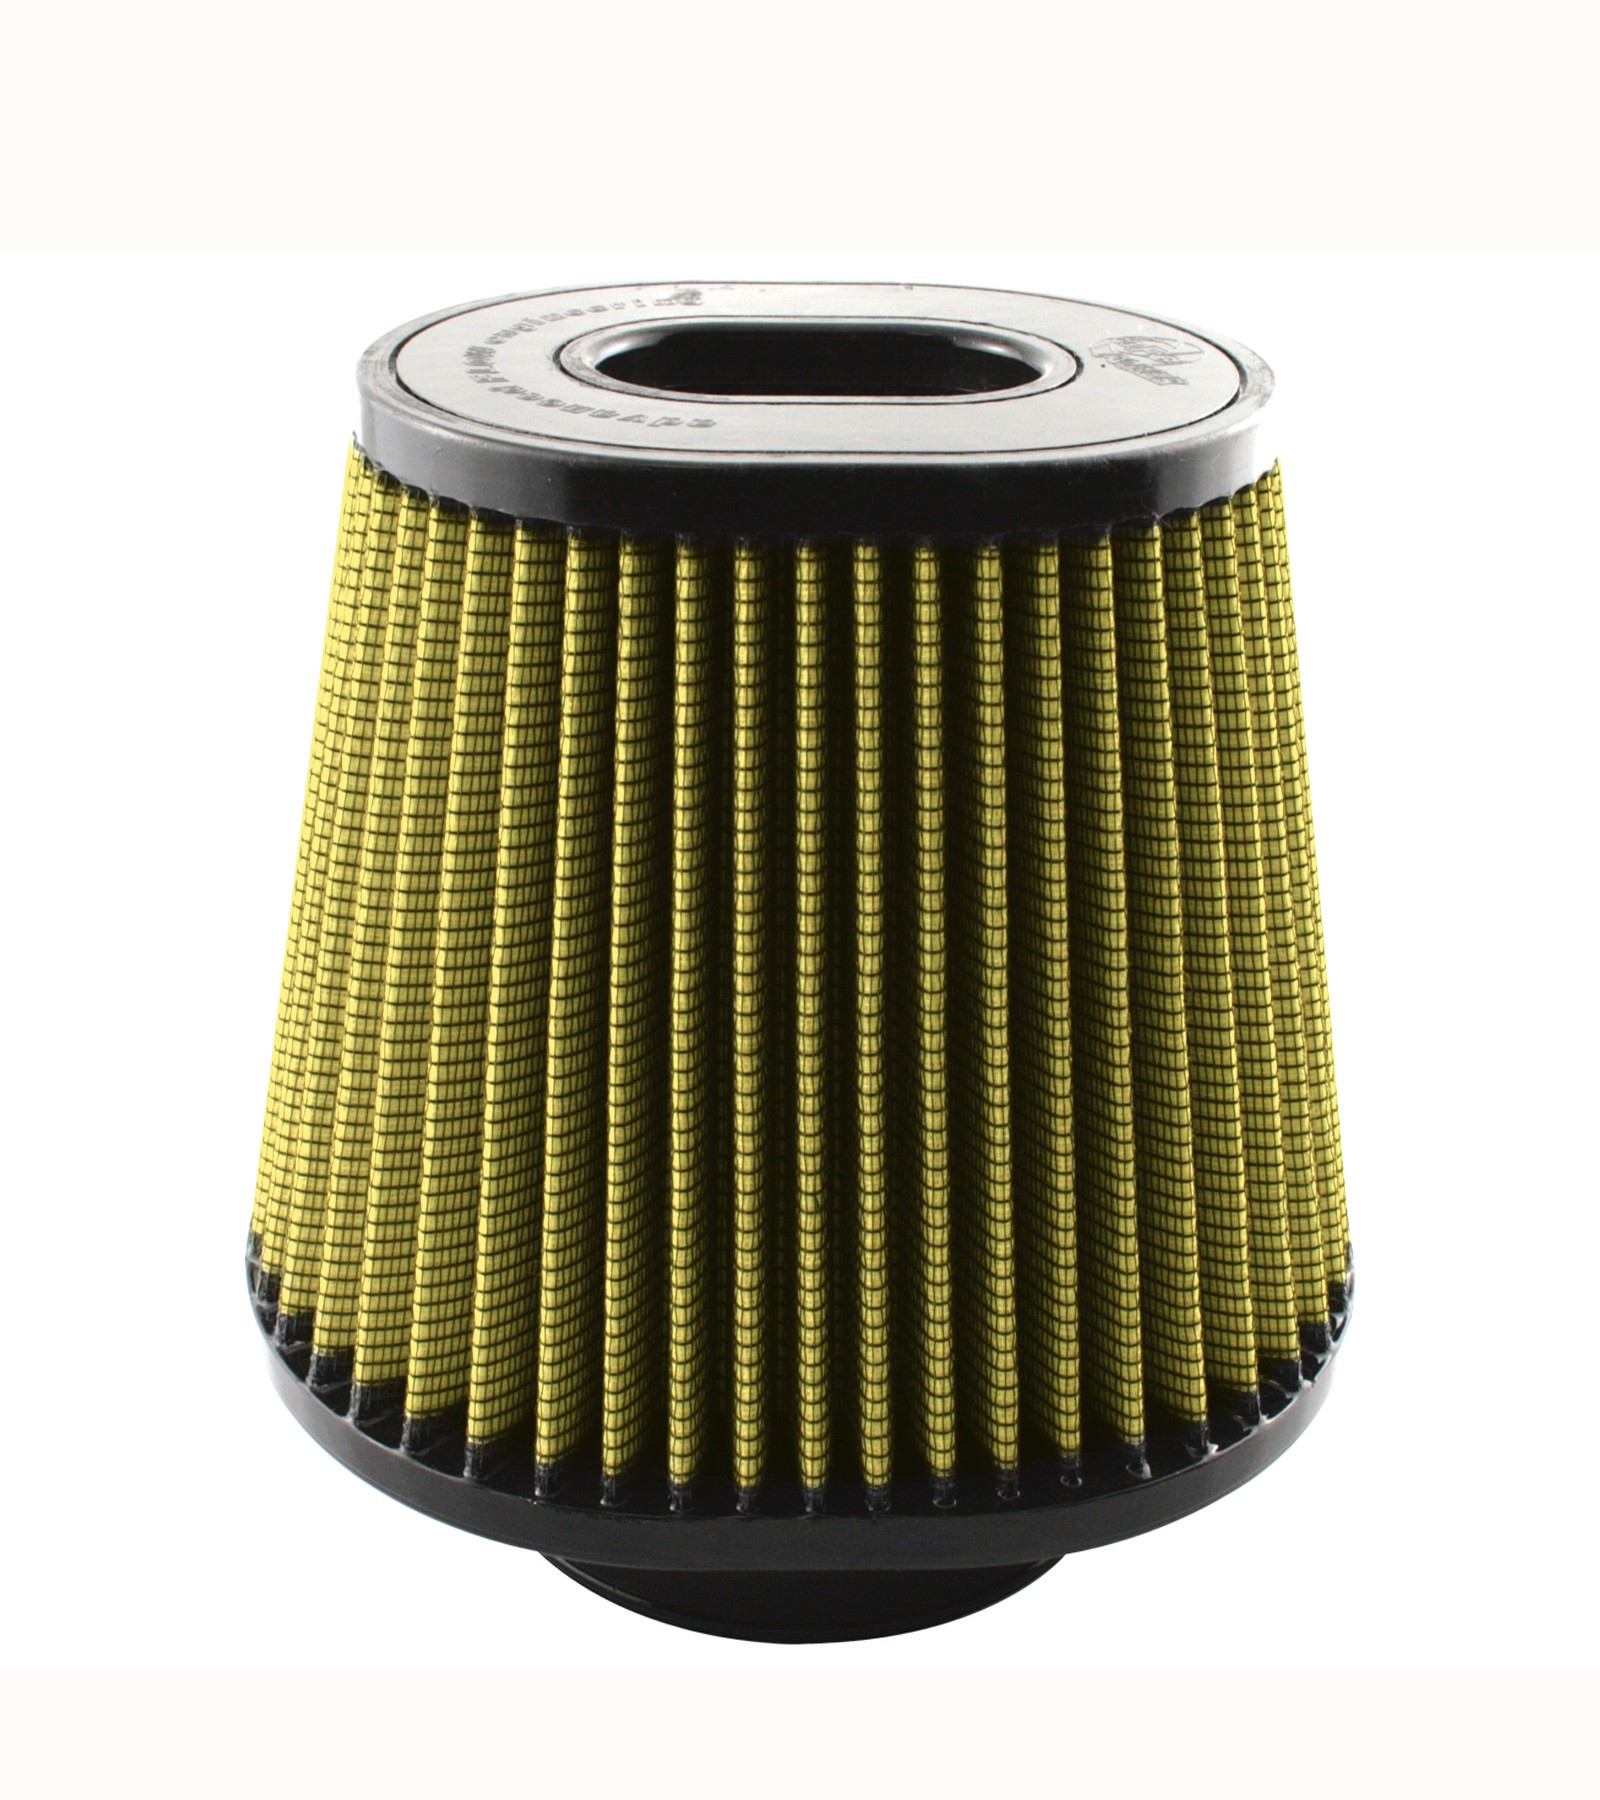 aFe POWER 72-91044 Magnum FLOW Pro GUARD7 Air Filter